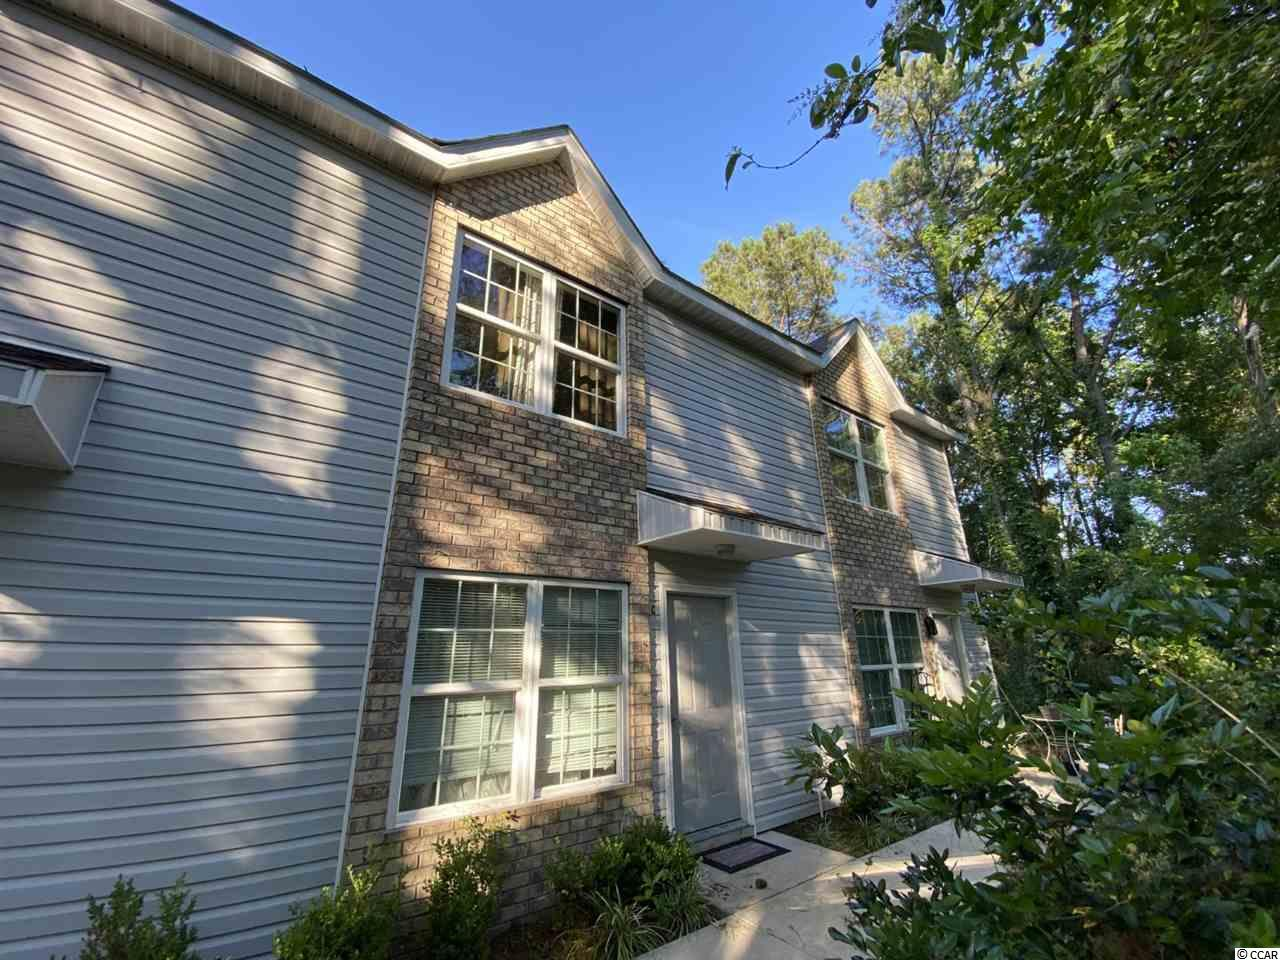 This is a beautiful 4 unit townhouse building built in 2017 that has great investment potential. Located in the heart of Myrtle Beach and priced competitively.